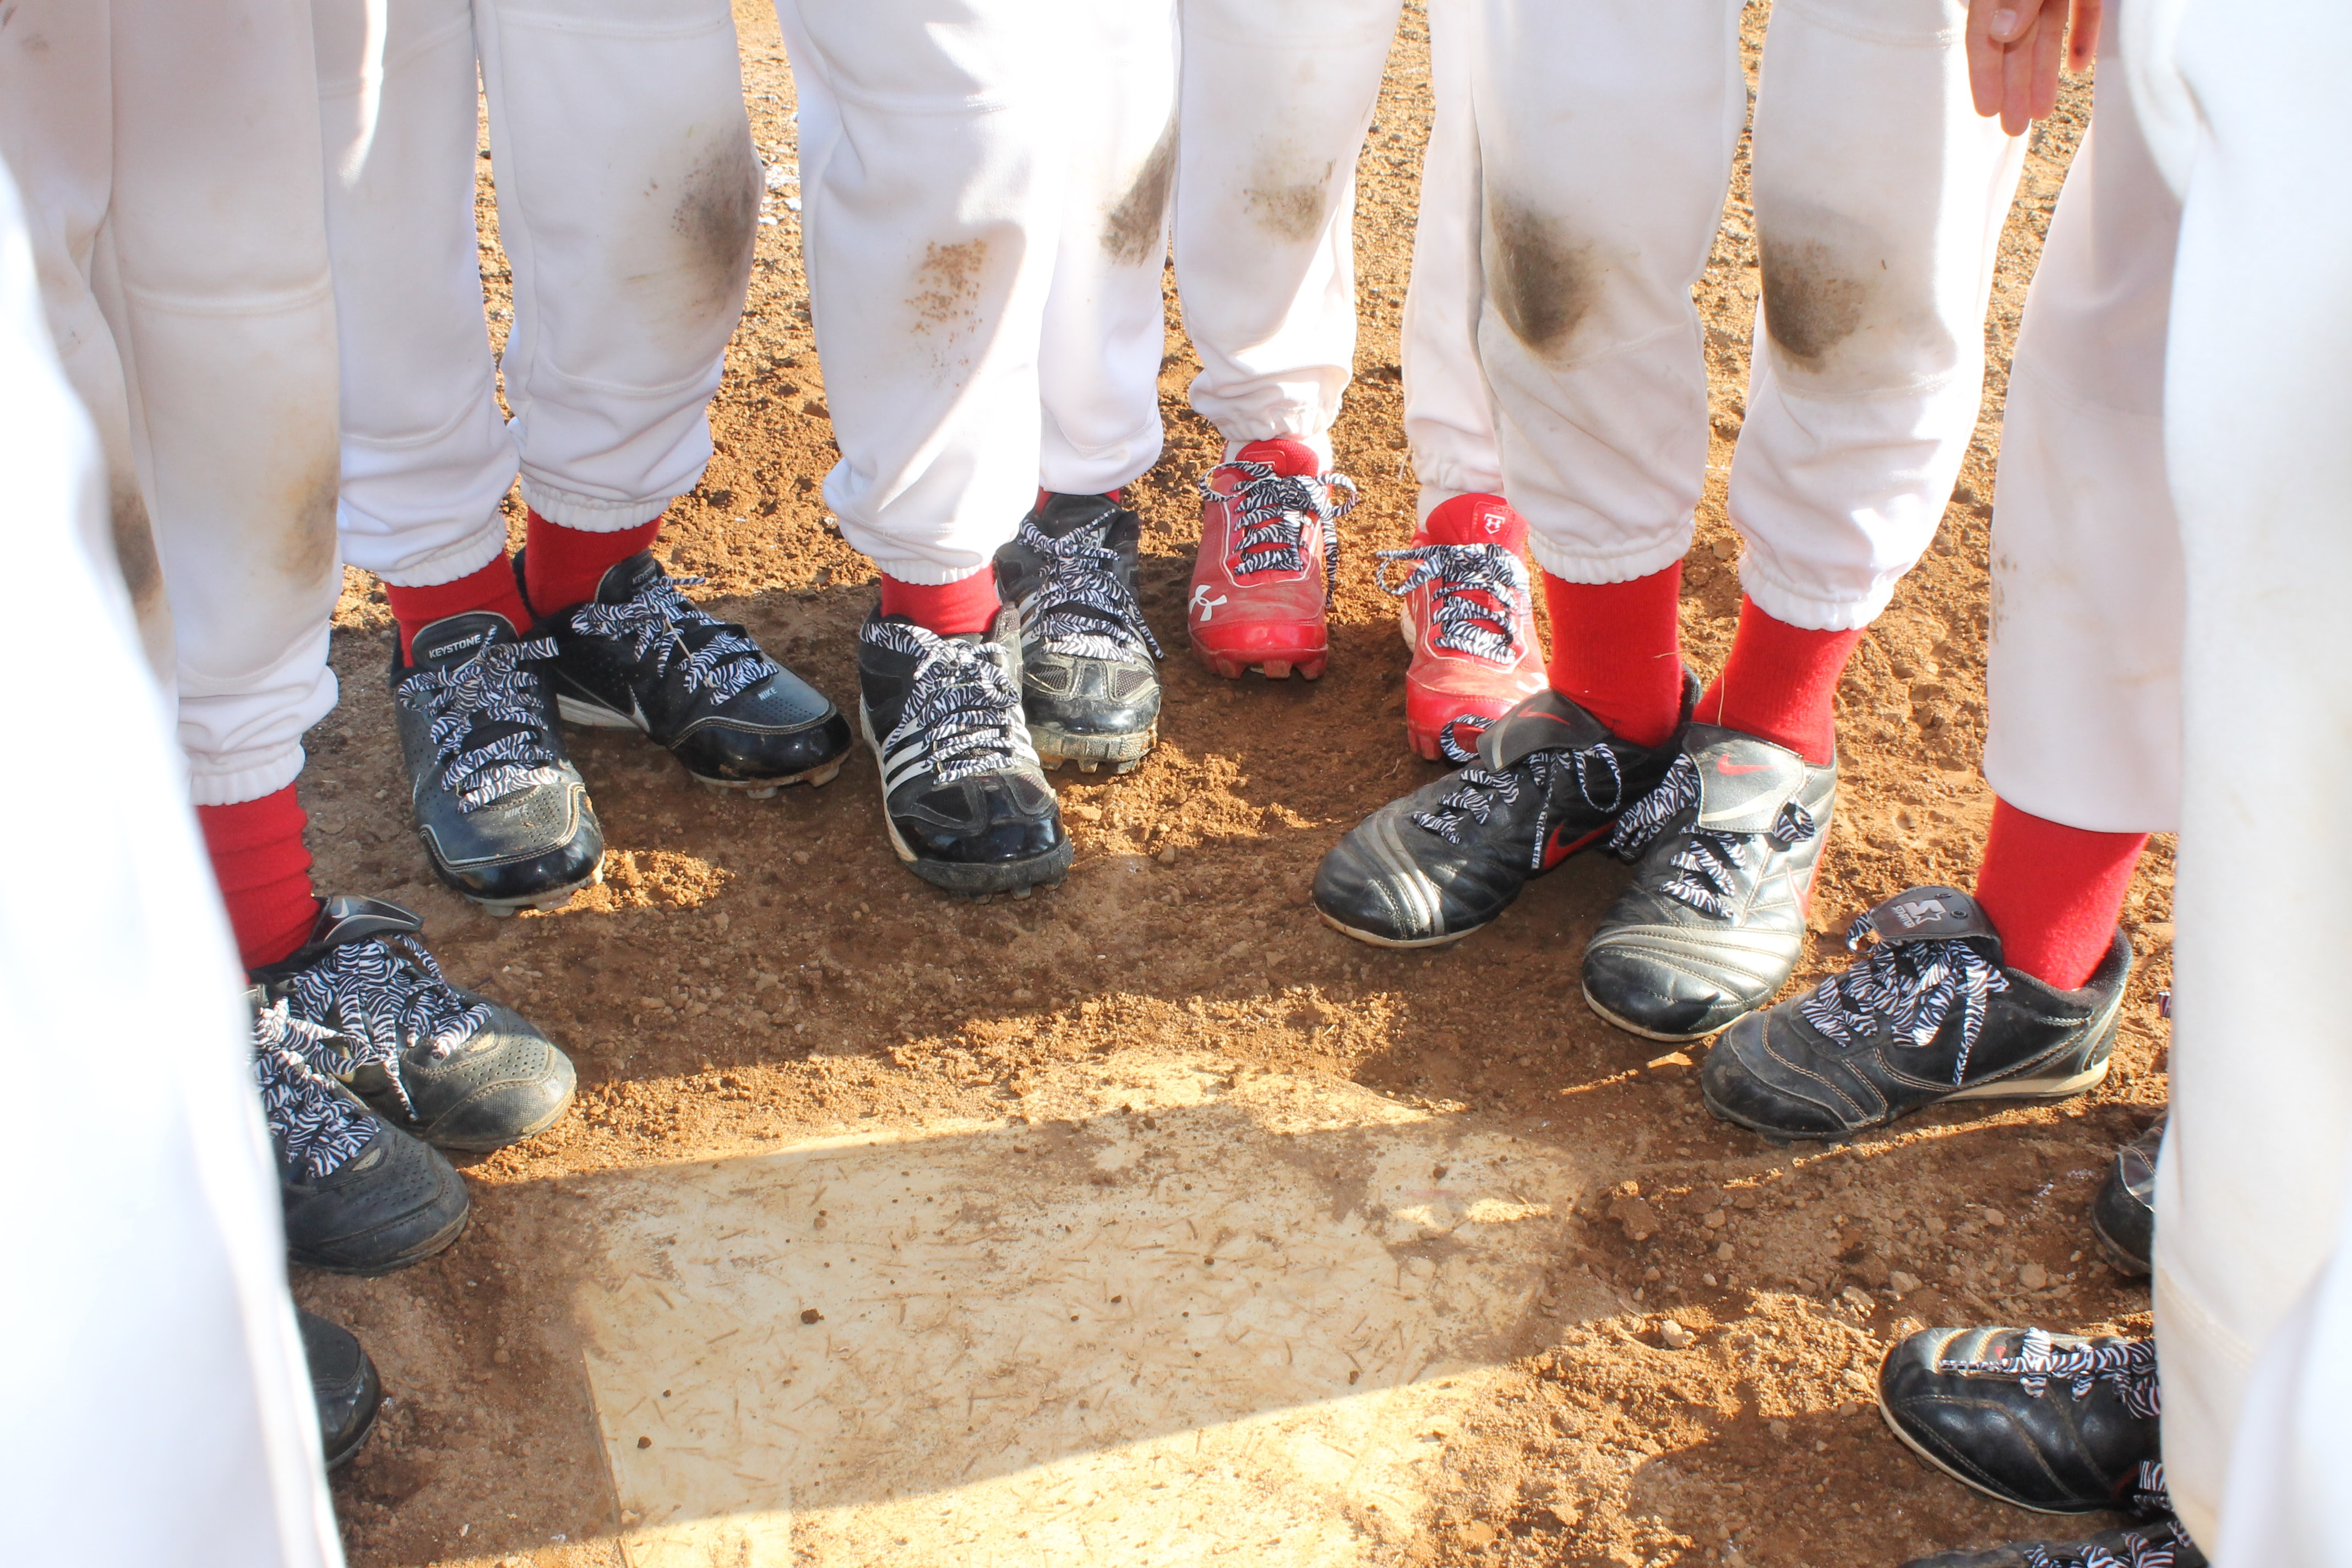 Mud Cats Little League Team Raises Awareness about Carcinoid Cancer and Funds for the Carcinoid Cancer Foundation